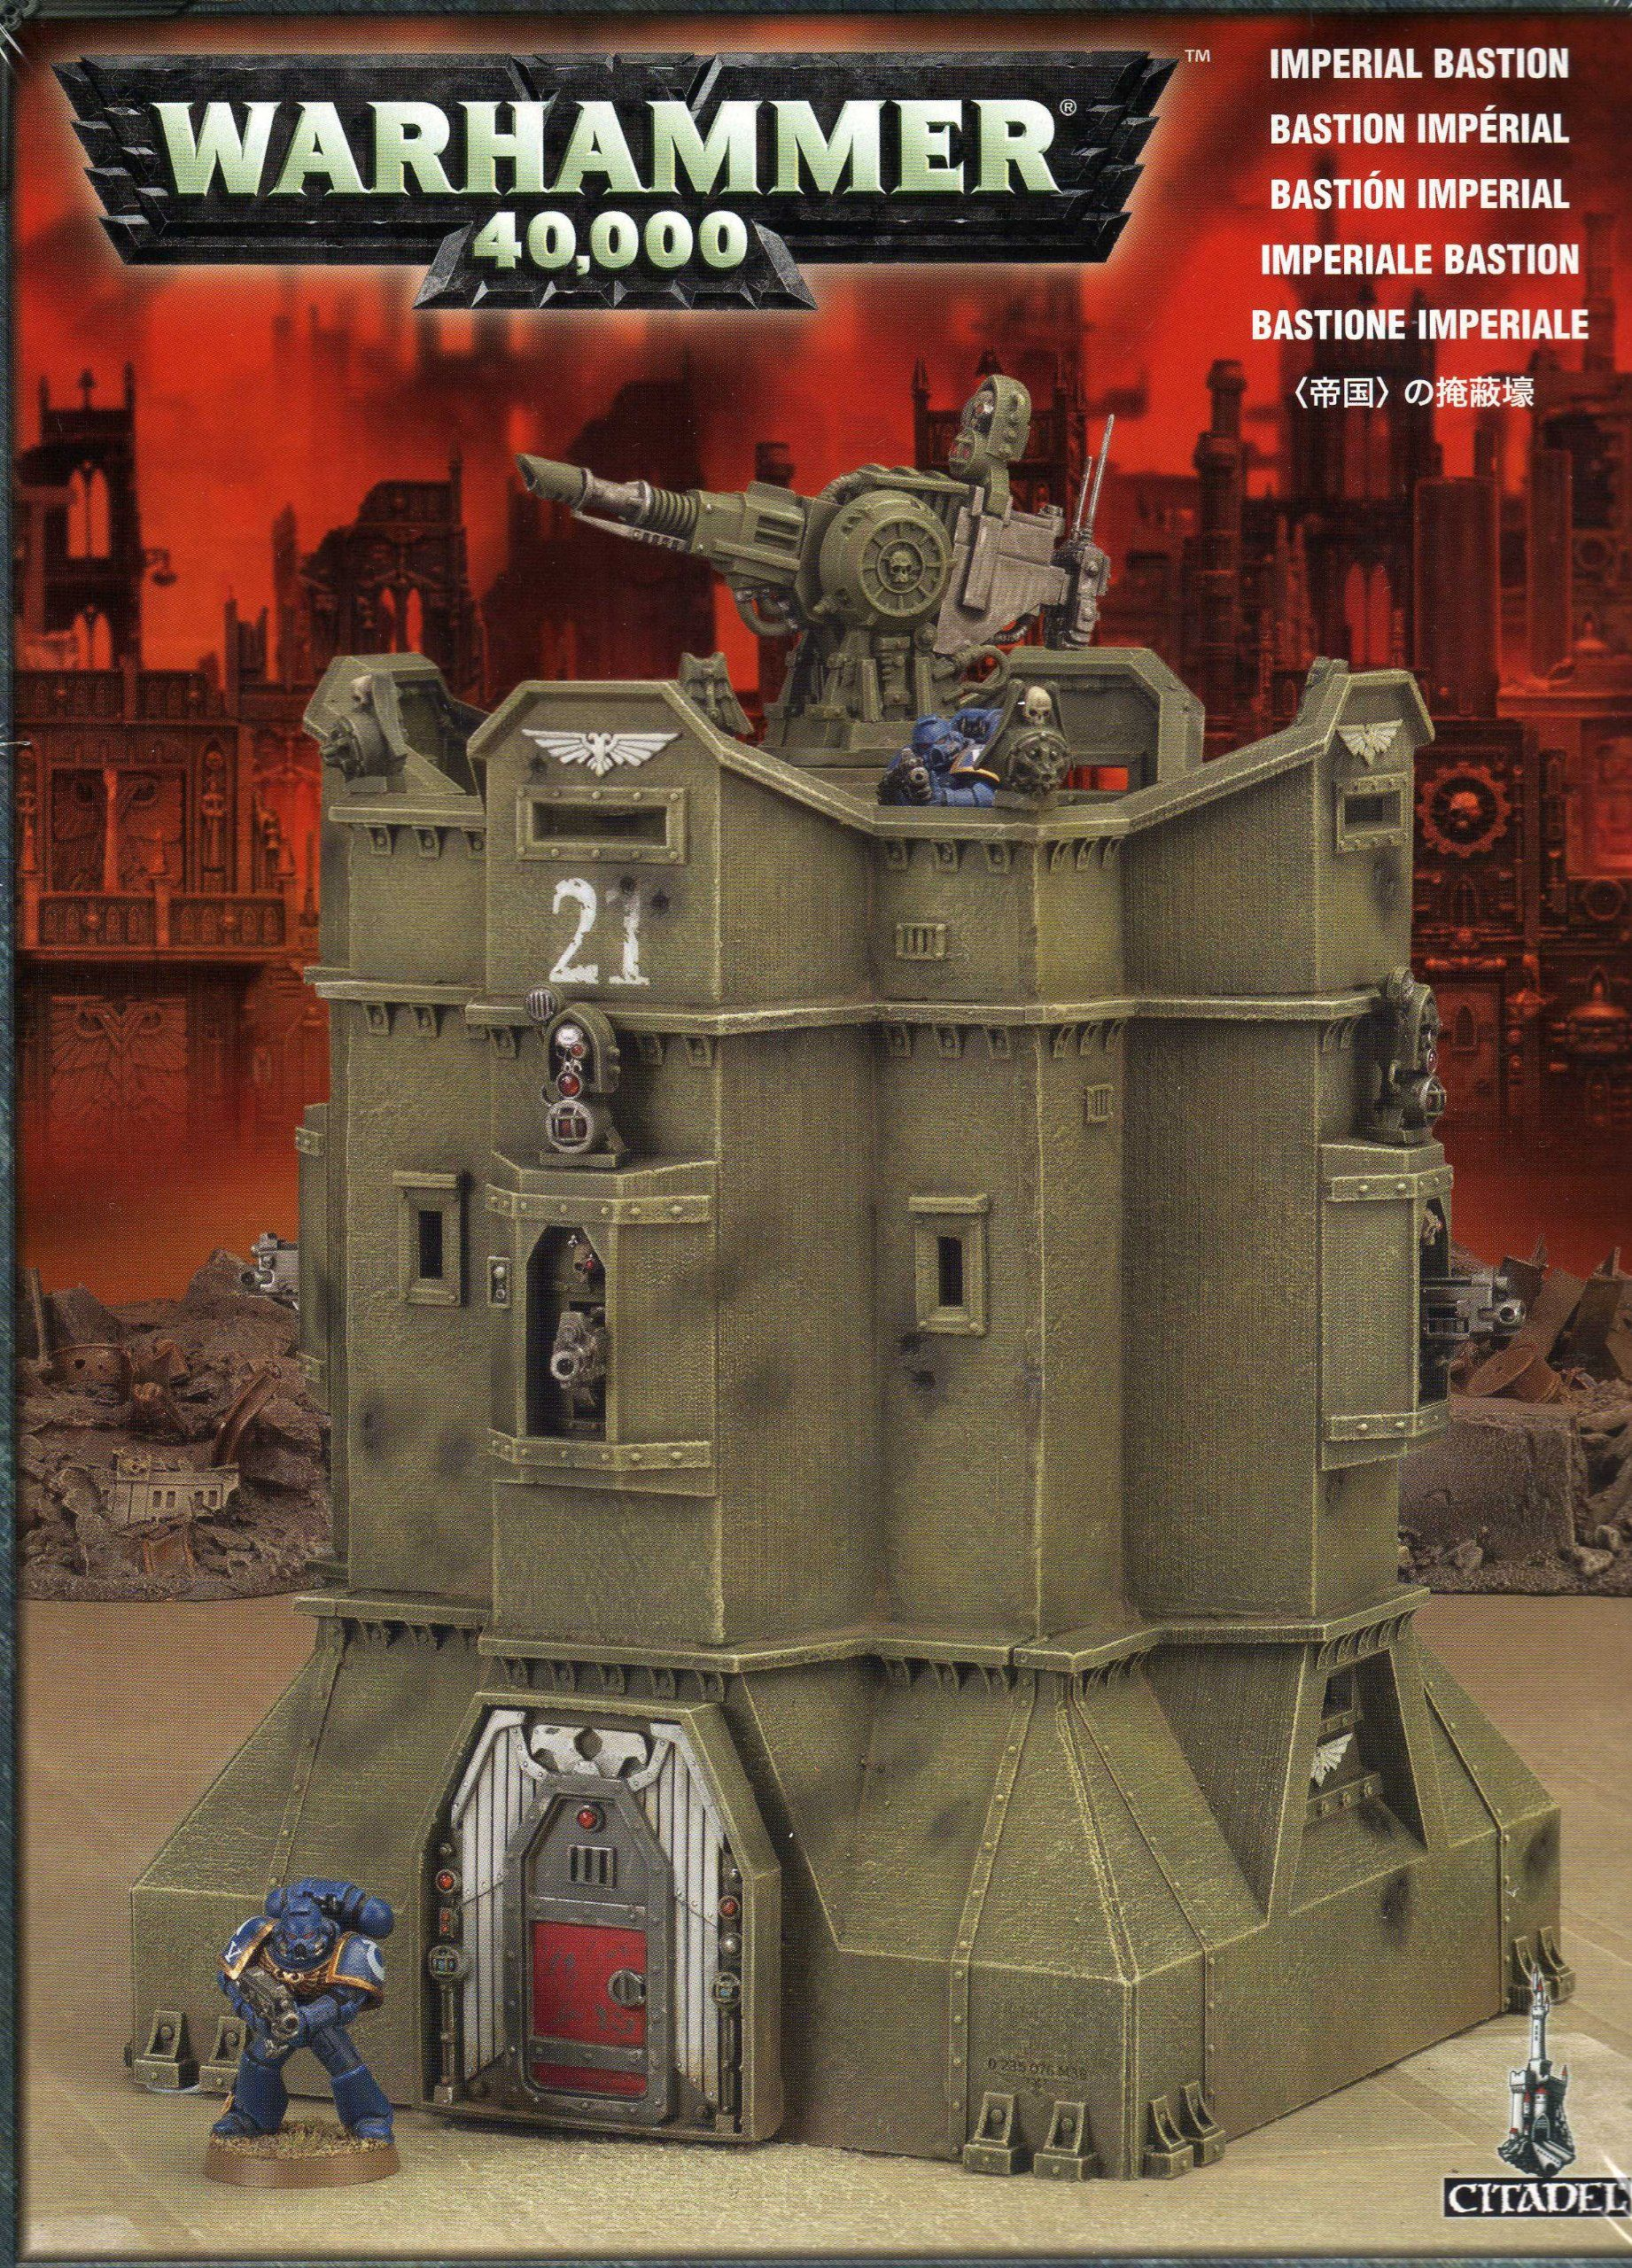 Imperial bastion scenery 2009 warhammer